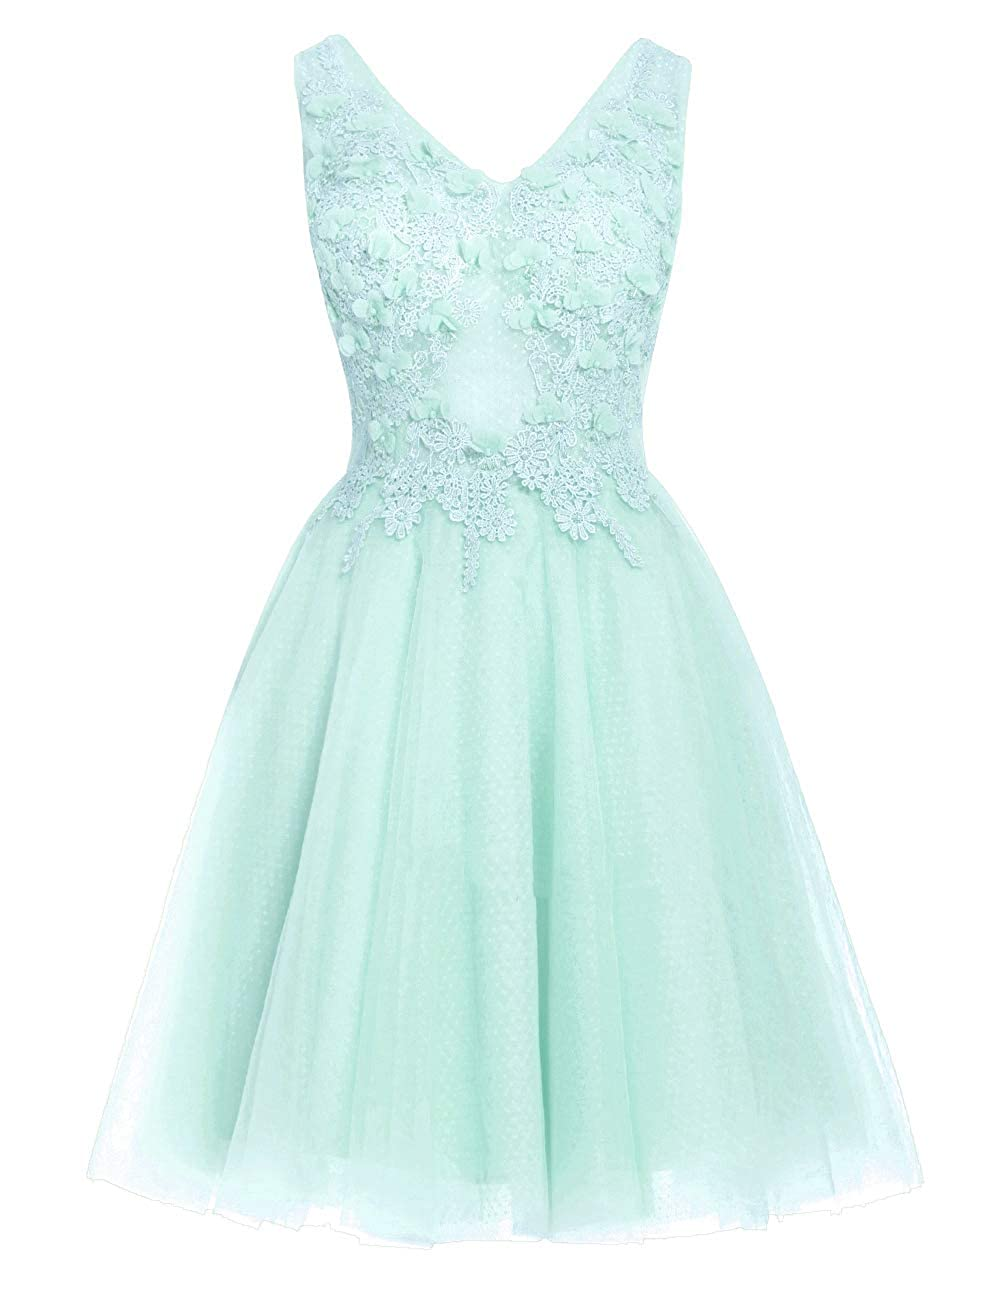 Ice bluee Uther Short Homecoming Dresses Lace Appliques 2018 Prom Wedding Party Dress V Neck